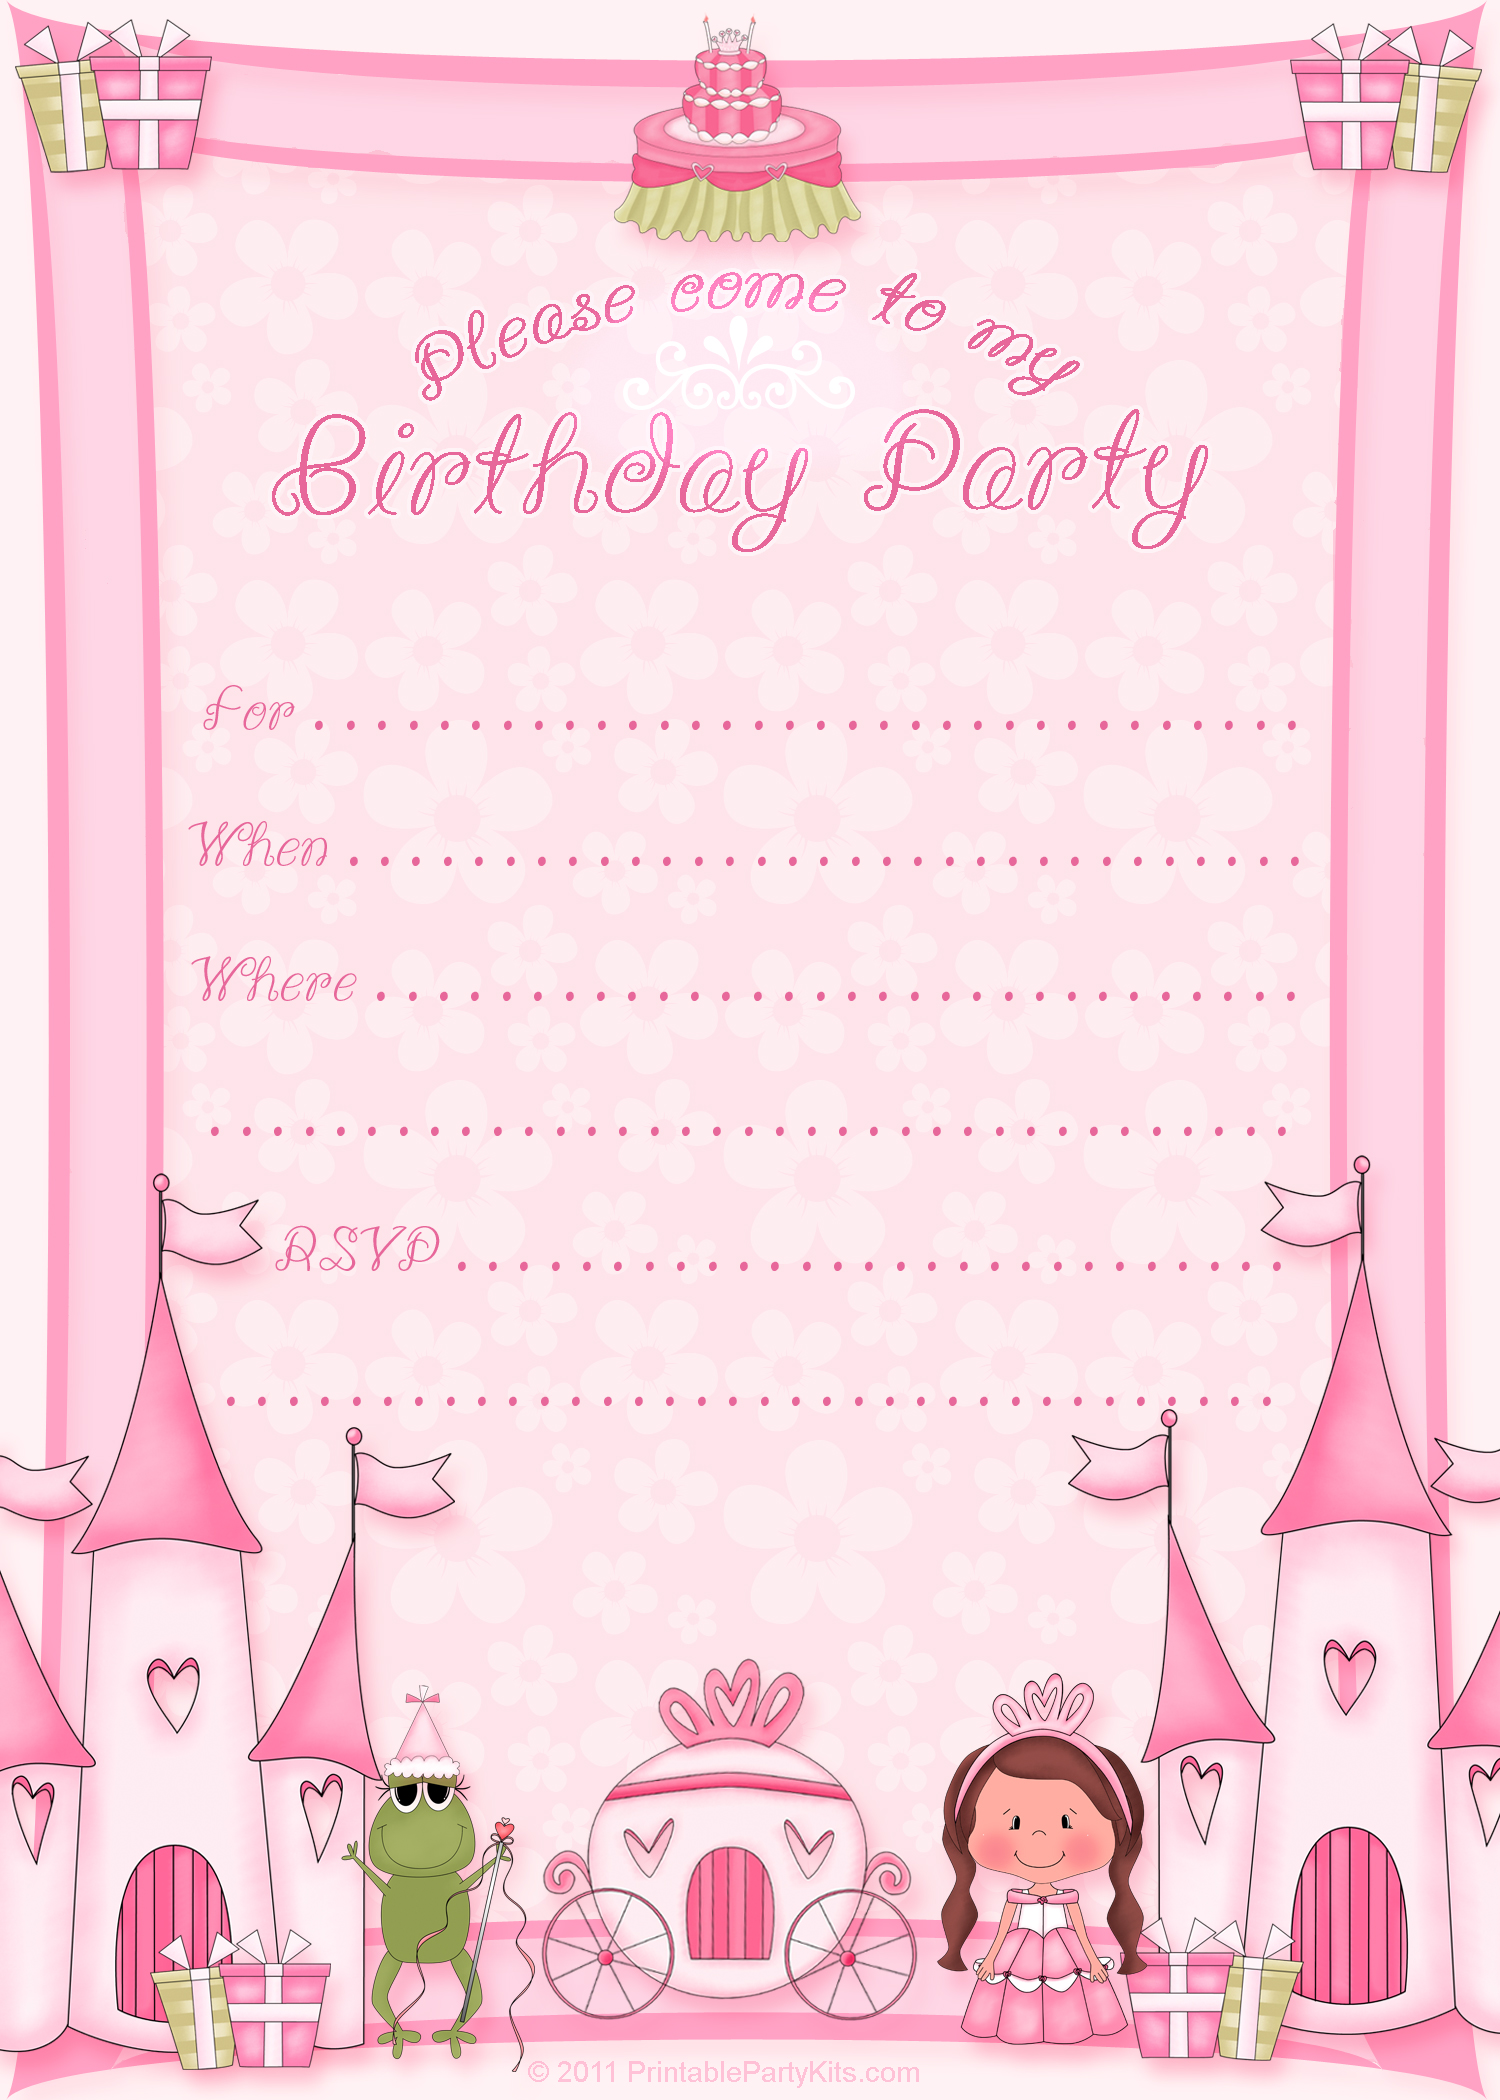 free printable surprise birthday invitations template ; Birthday-Party-Invitation-Images-Free-for-a-lovely-birthday-Invitation-design-with-lovely-layout-14